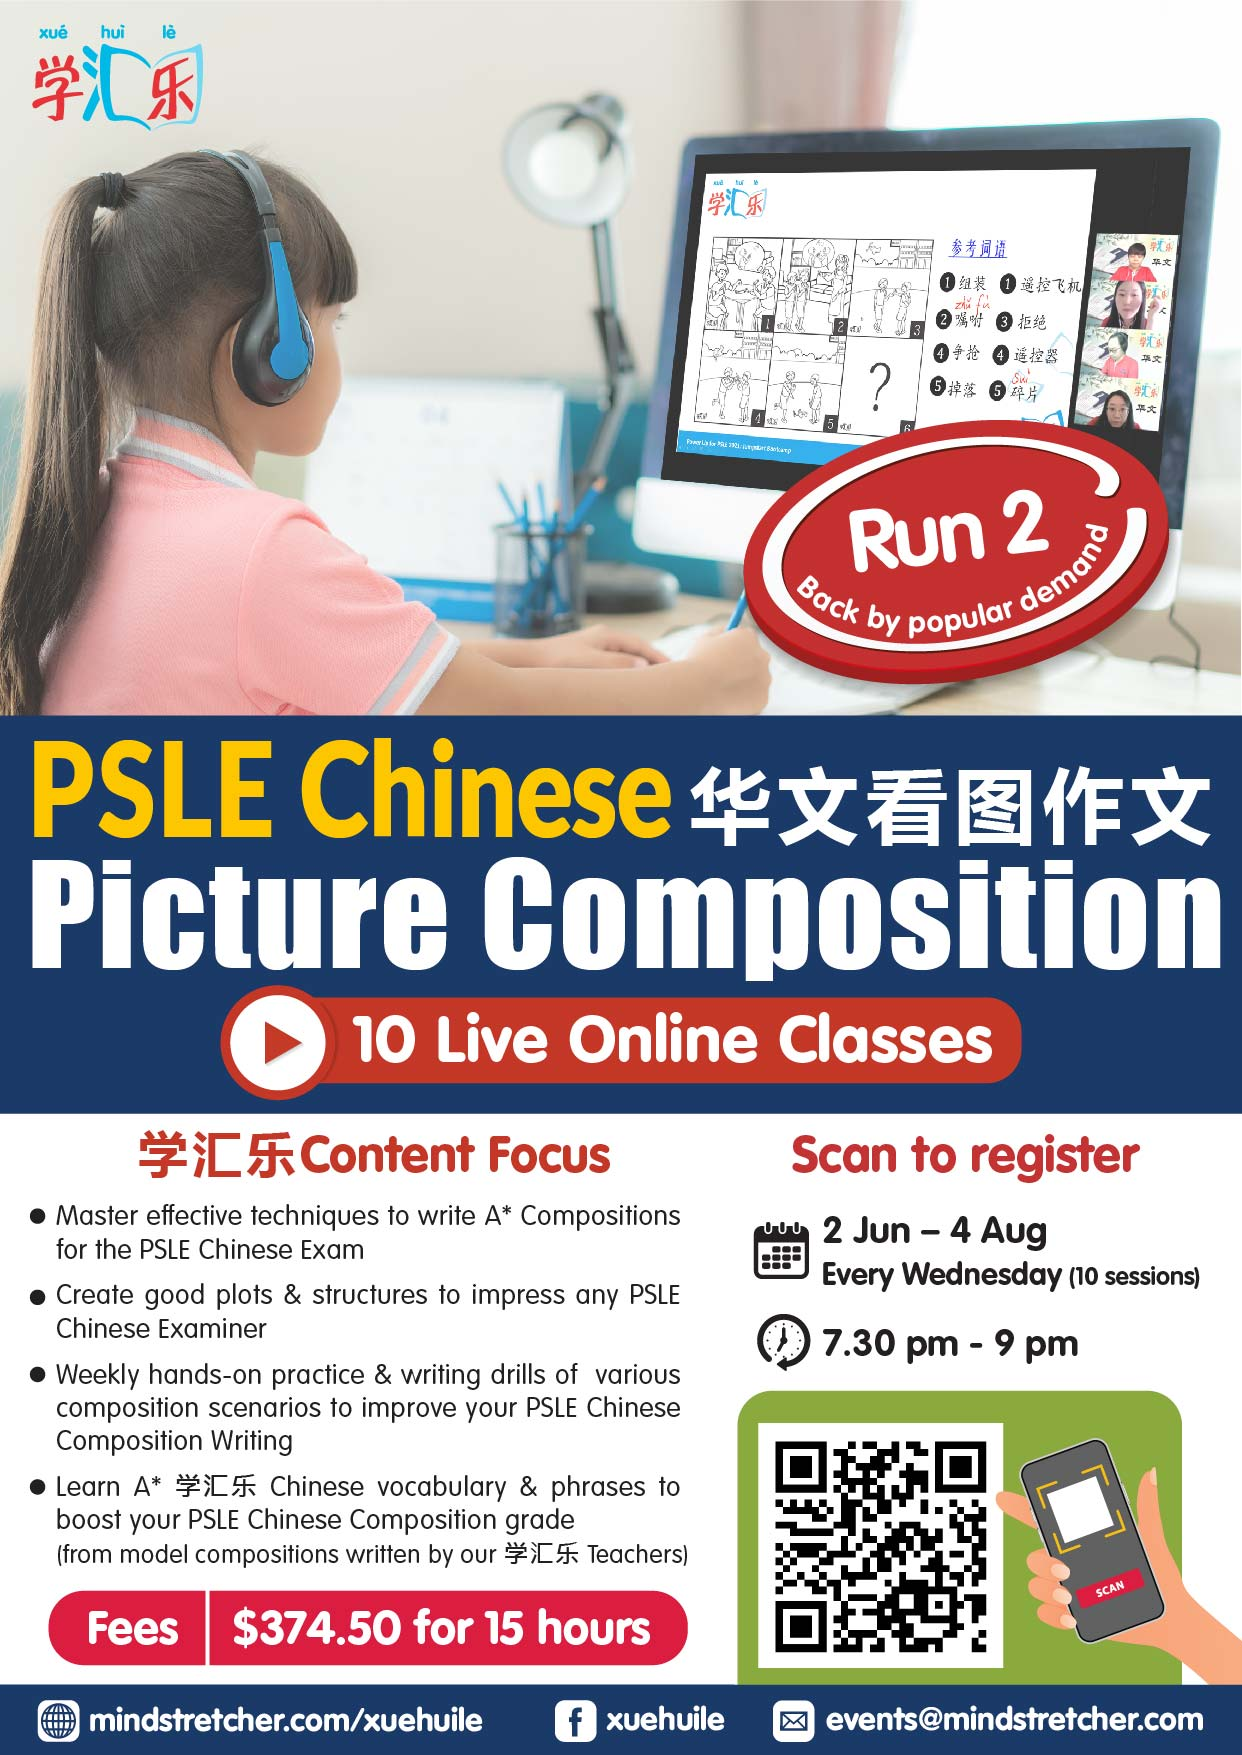 PSLE Chinese Picture Composition (Mind Stretcher) (Run 2)